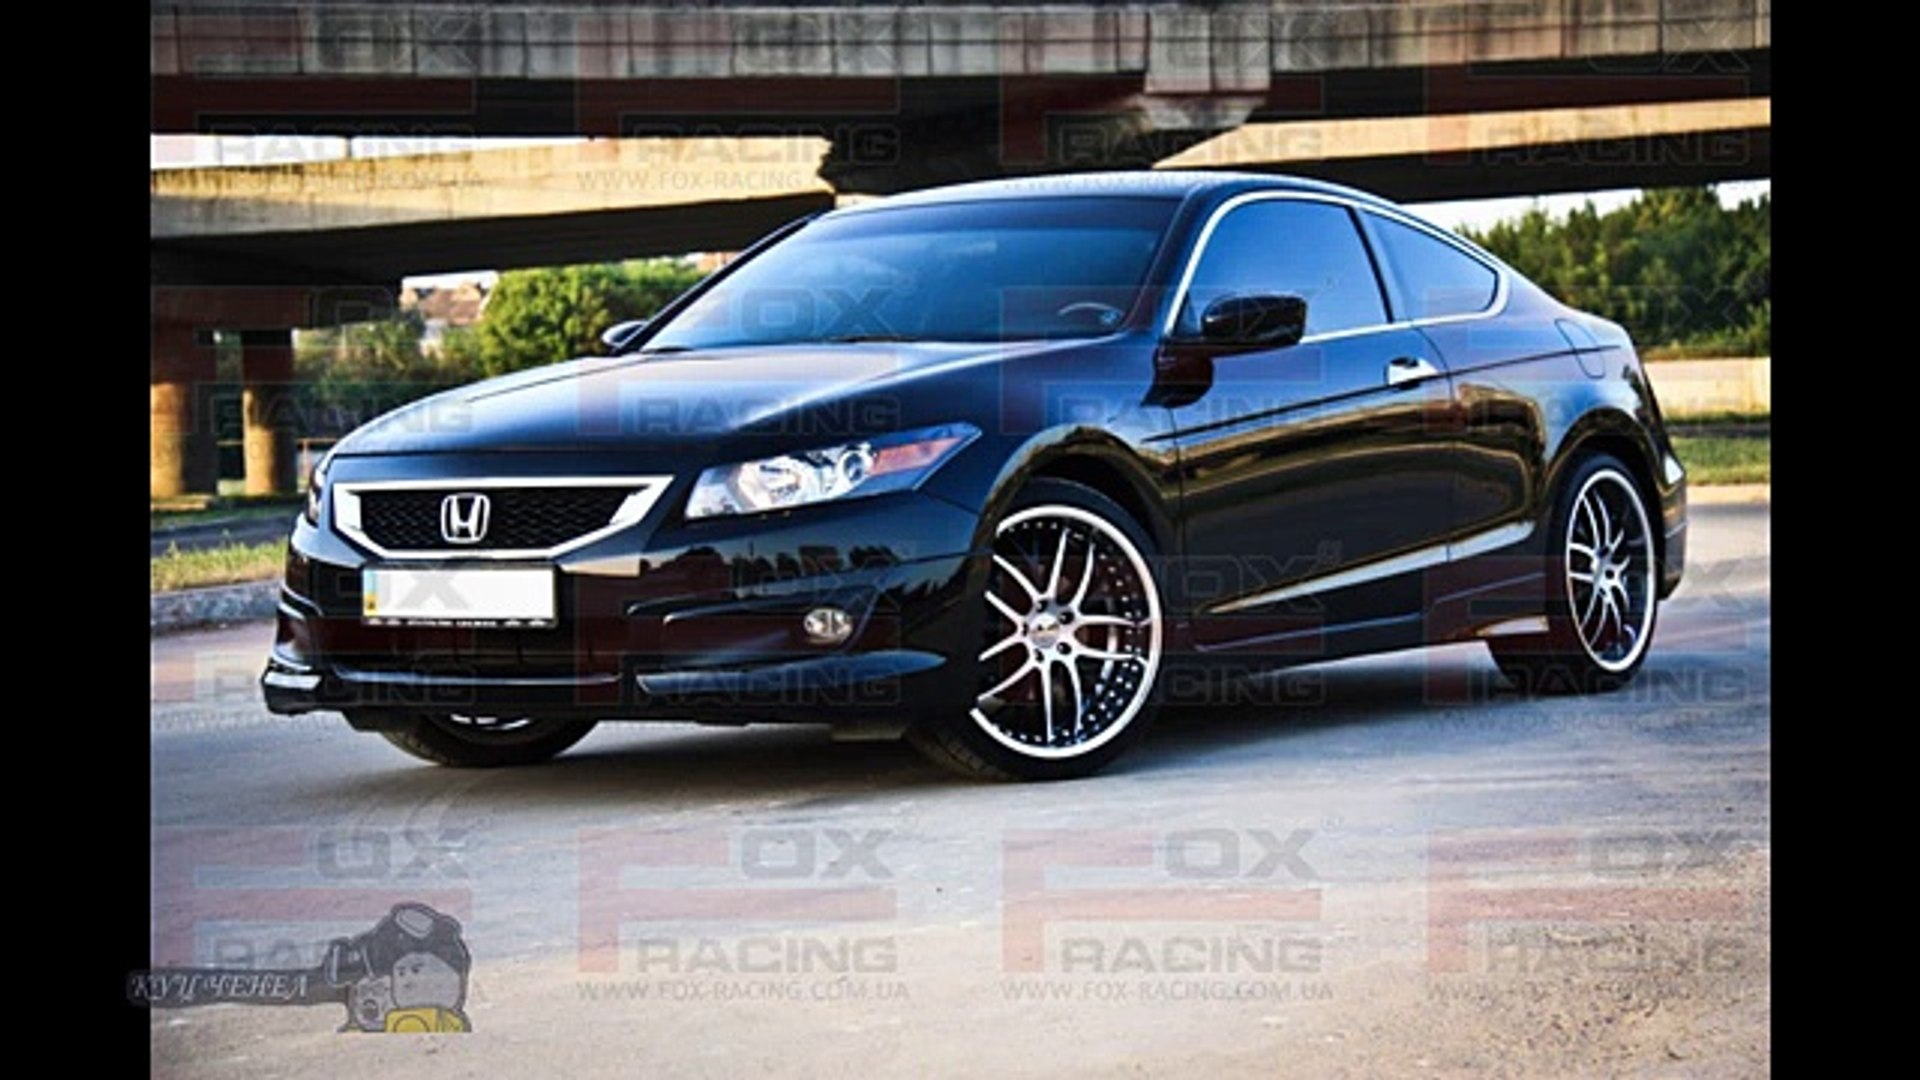 Honda Accord Coupe Tuning Japanese Cars With Their Hands In 2015 Video Dailymotion